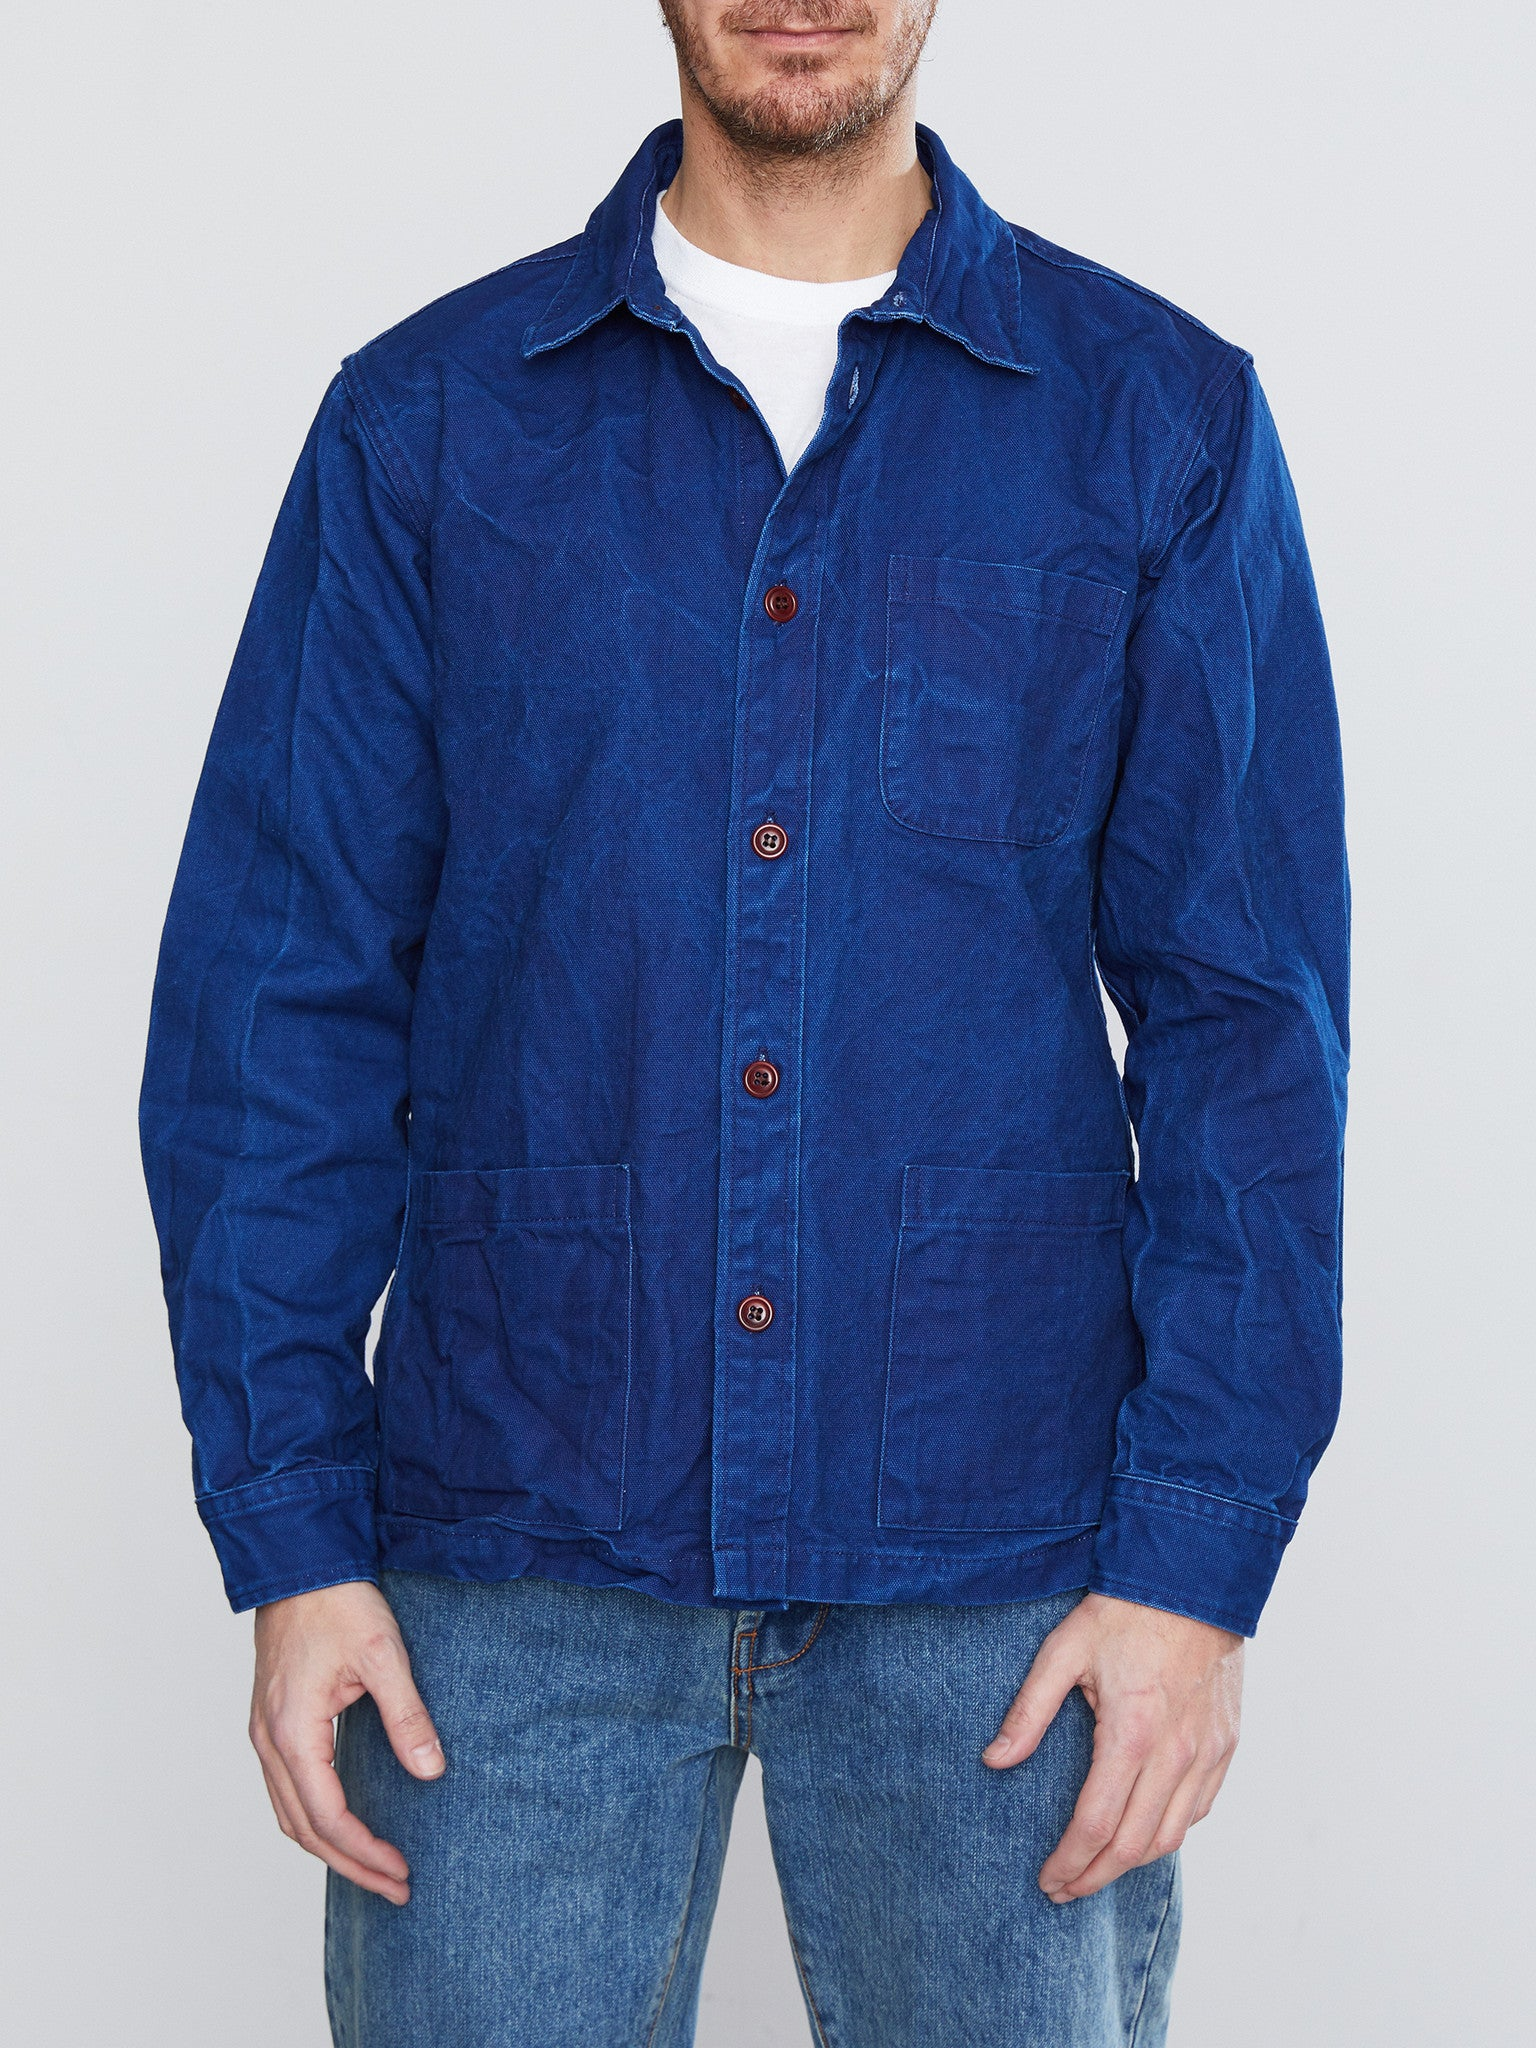 Duck Dyed Overshirt